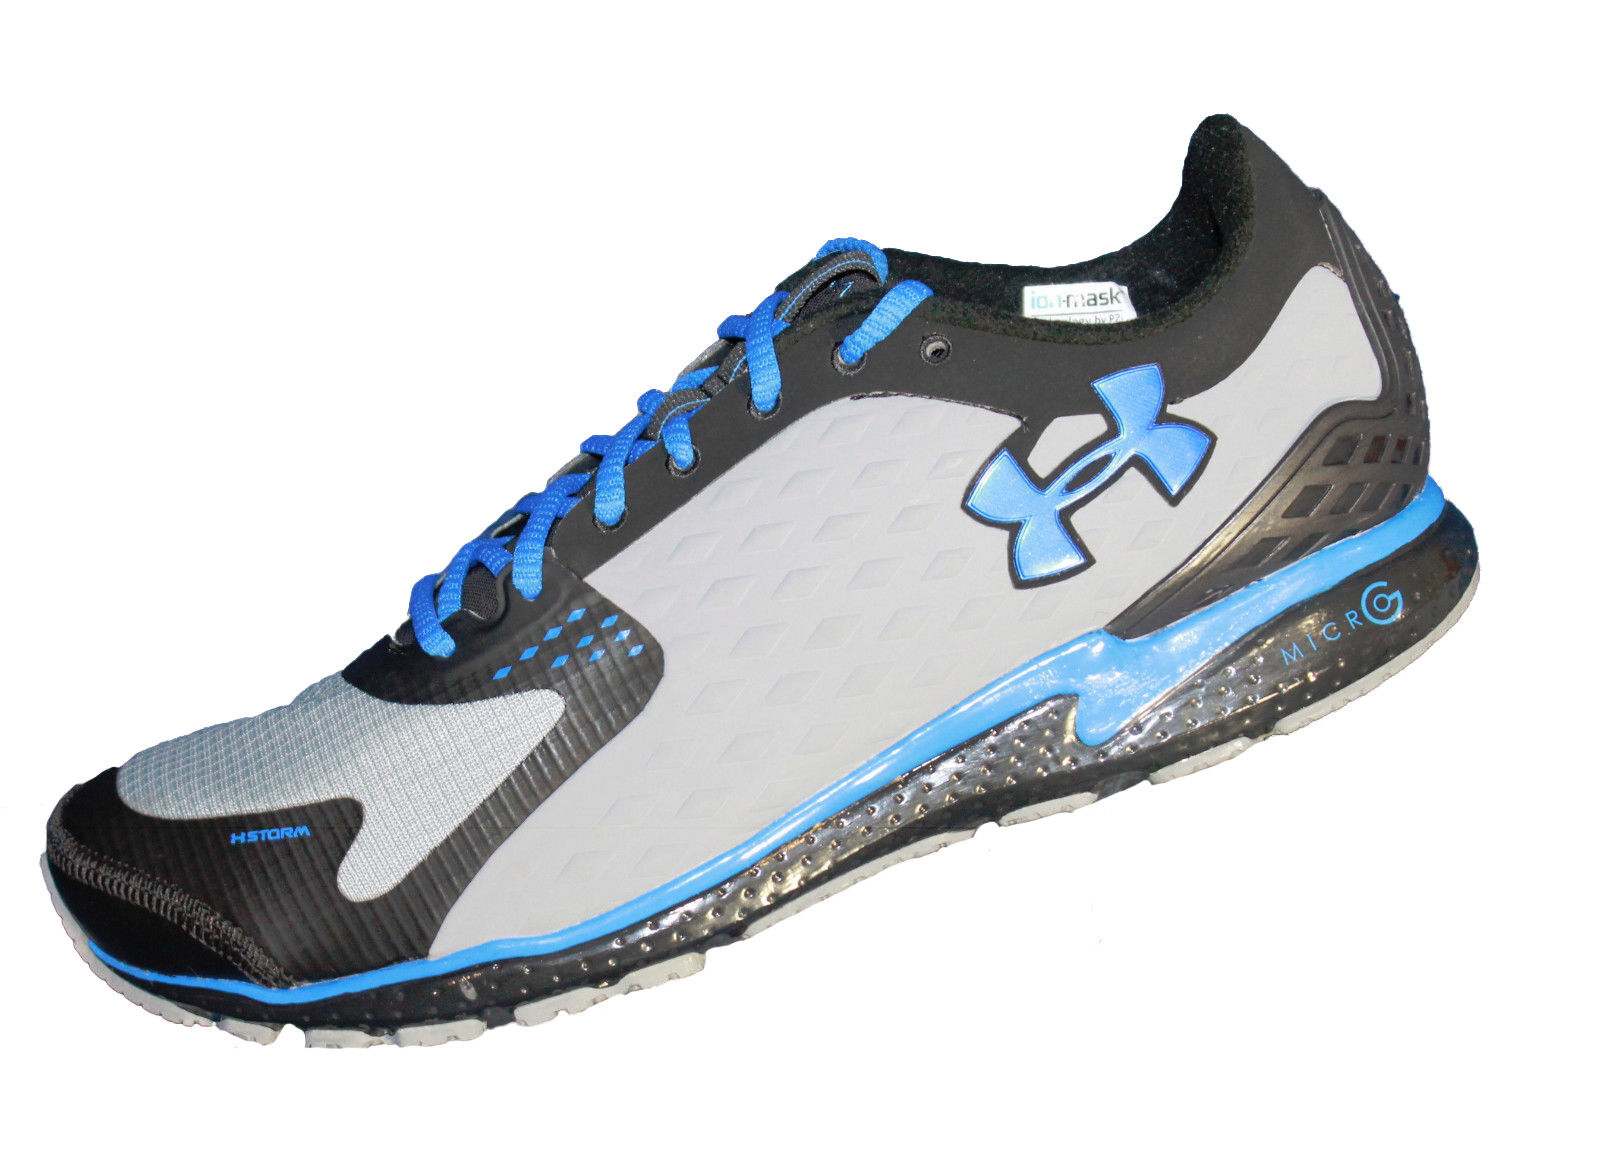 hommes Under Armour Micro G Defy Storm Running Chaussures - 1237022-004